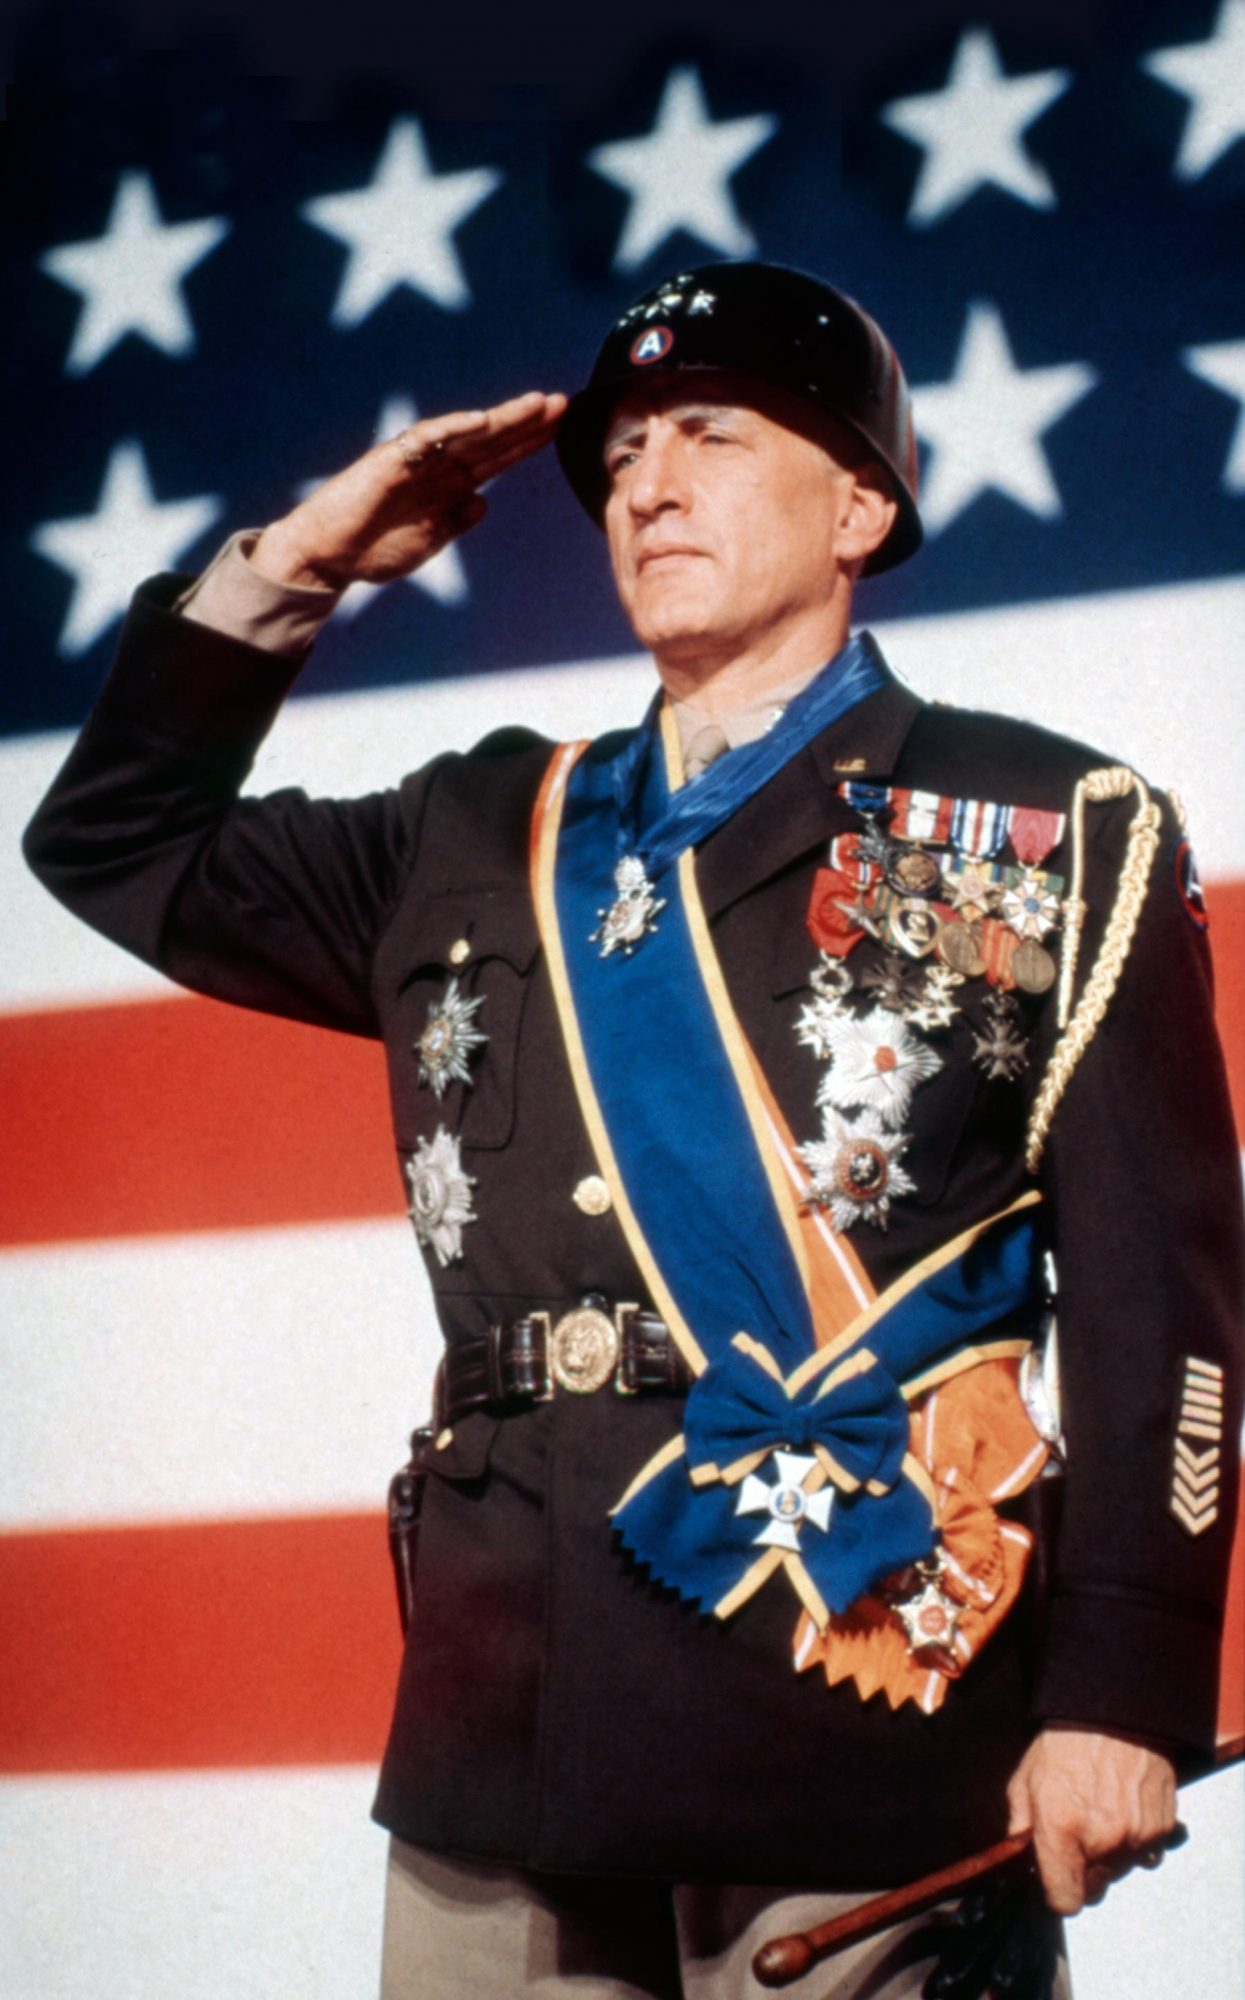 PATTON, George C. Scott, 1970. TM and Copyright © 20th Century Fox Film Corp. All rights reserved. C